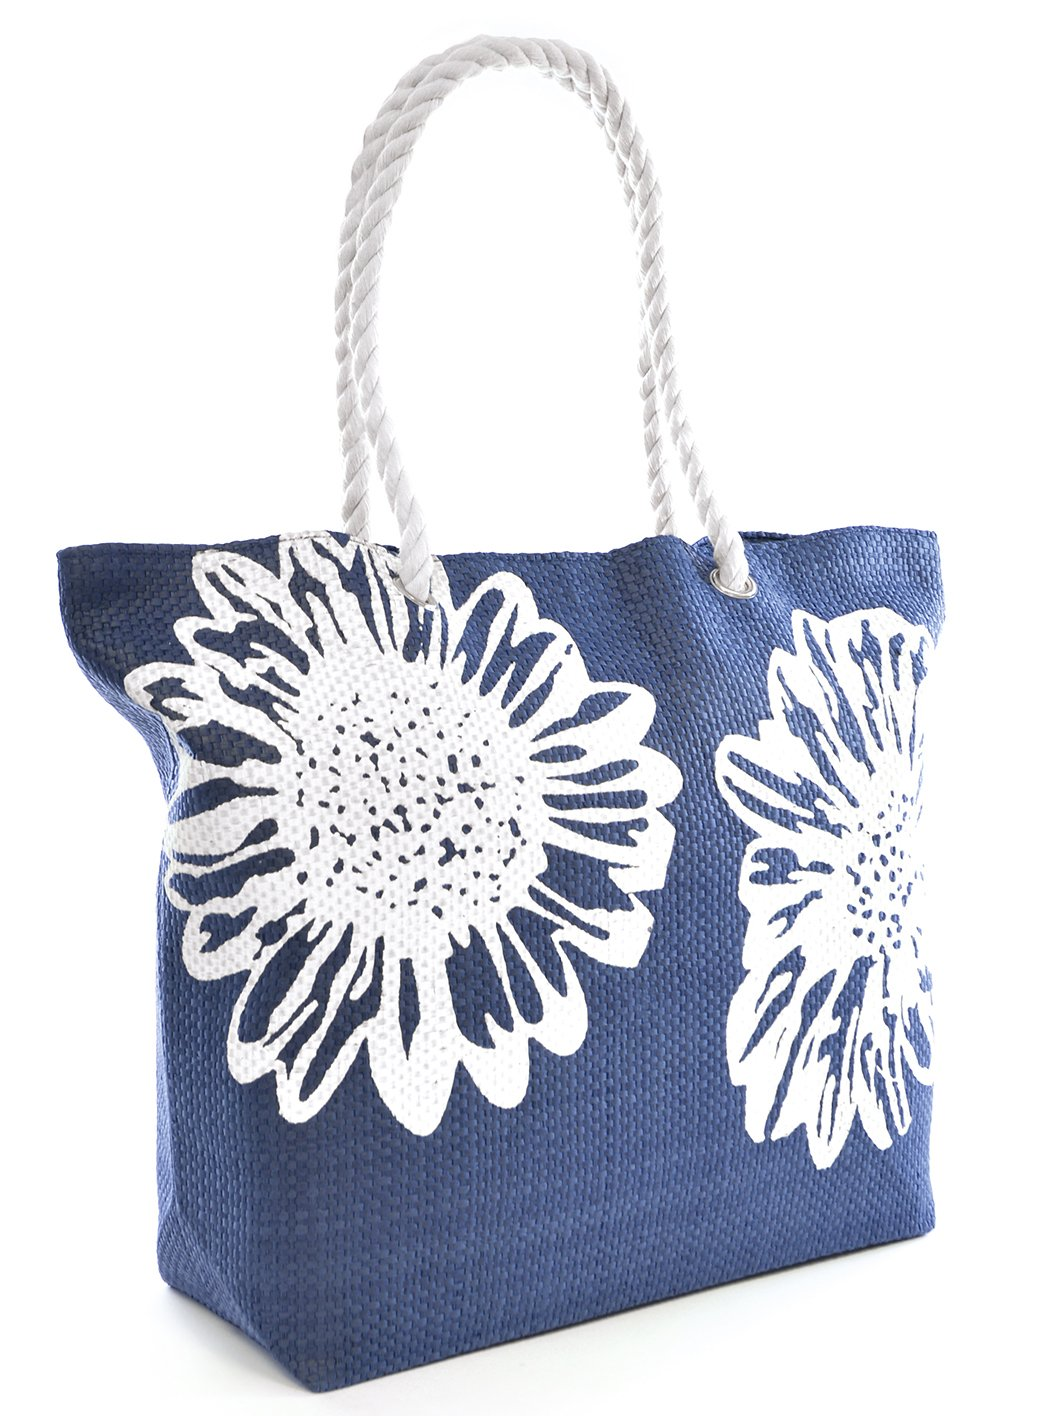 Beach Bag Tote Bags for Women Ladies Large Summer Shoulder Bag With Pocket Carrier Bag Flower (BLUE)